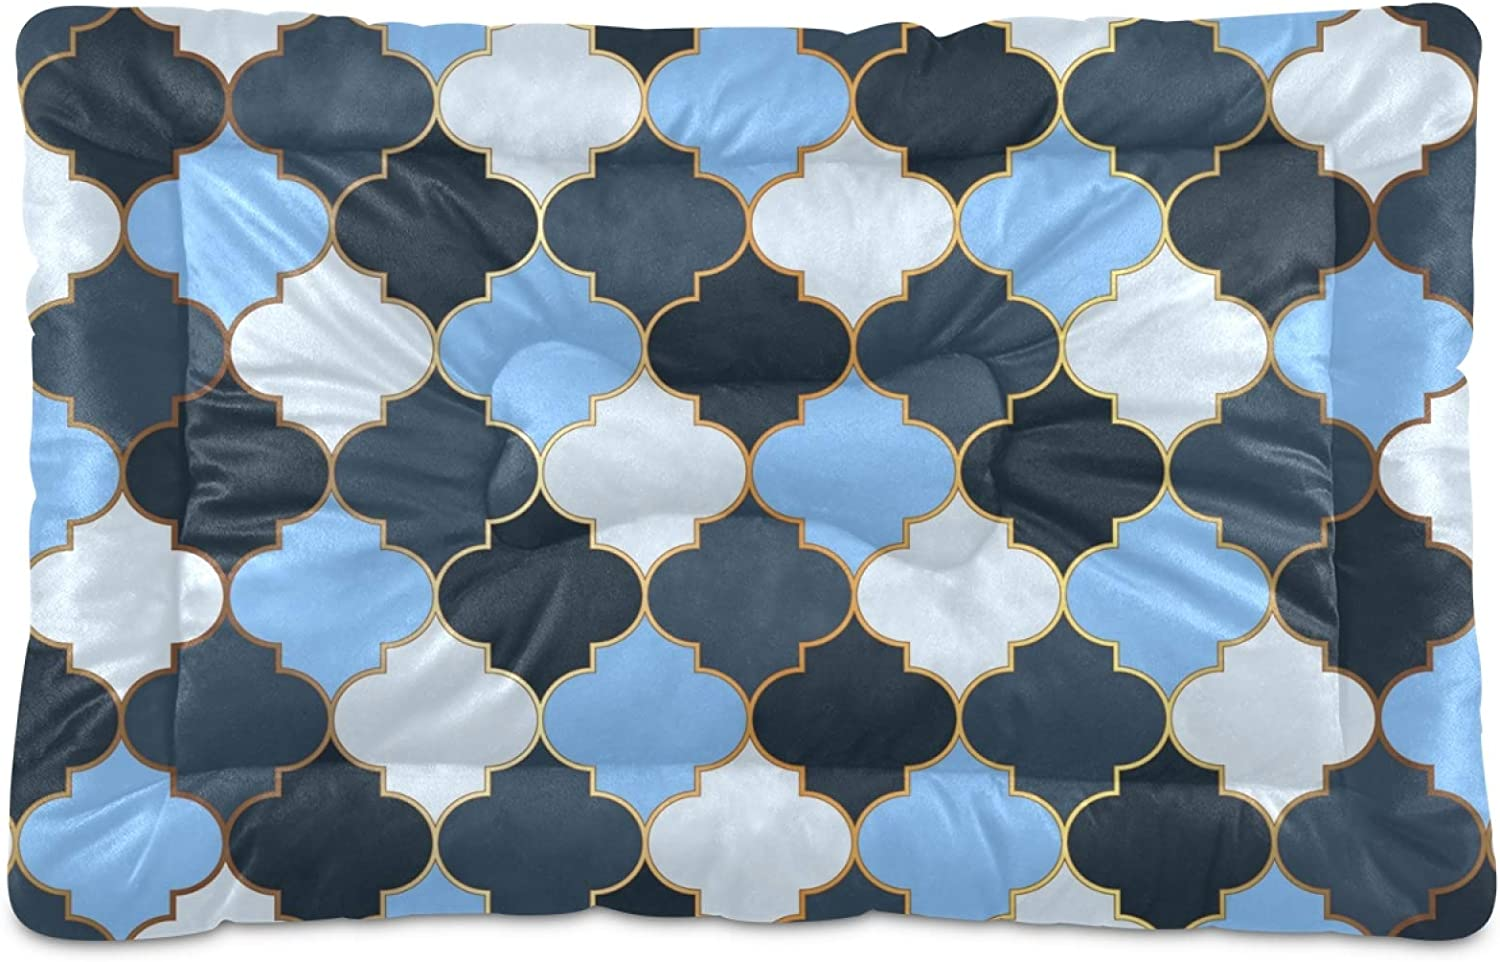 Ultra Soft Pet Bed Mat Moroccan 35% OFF Sale price Mosaic Fluff?Crate wit Short